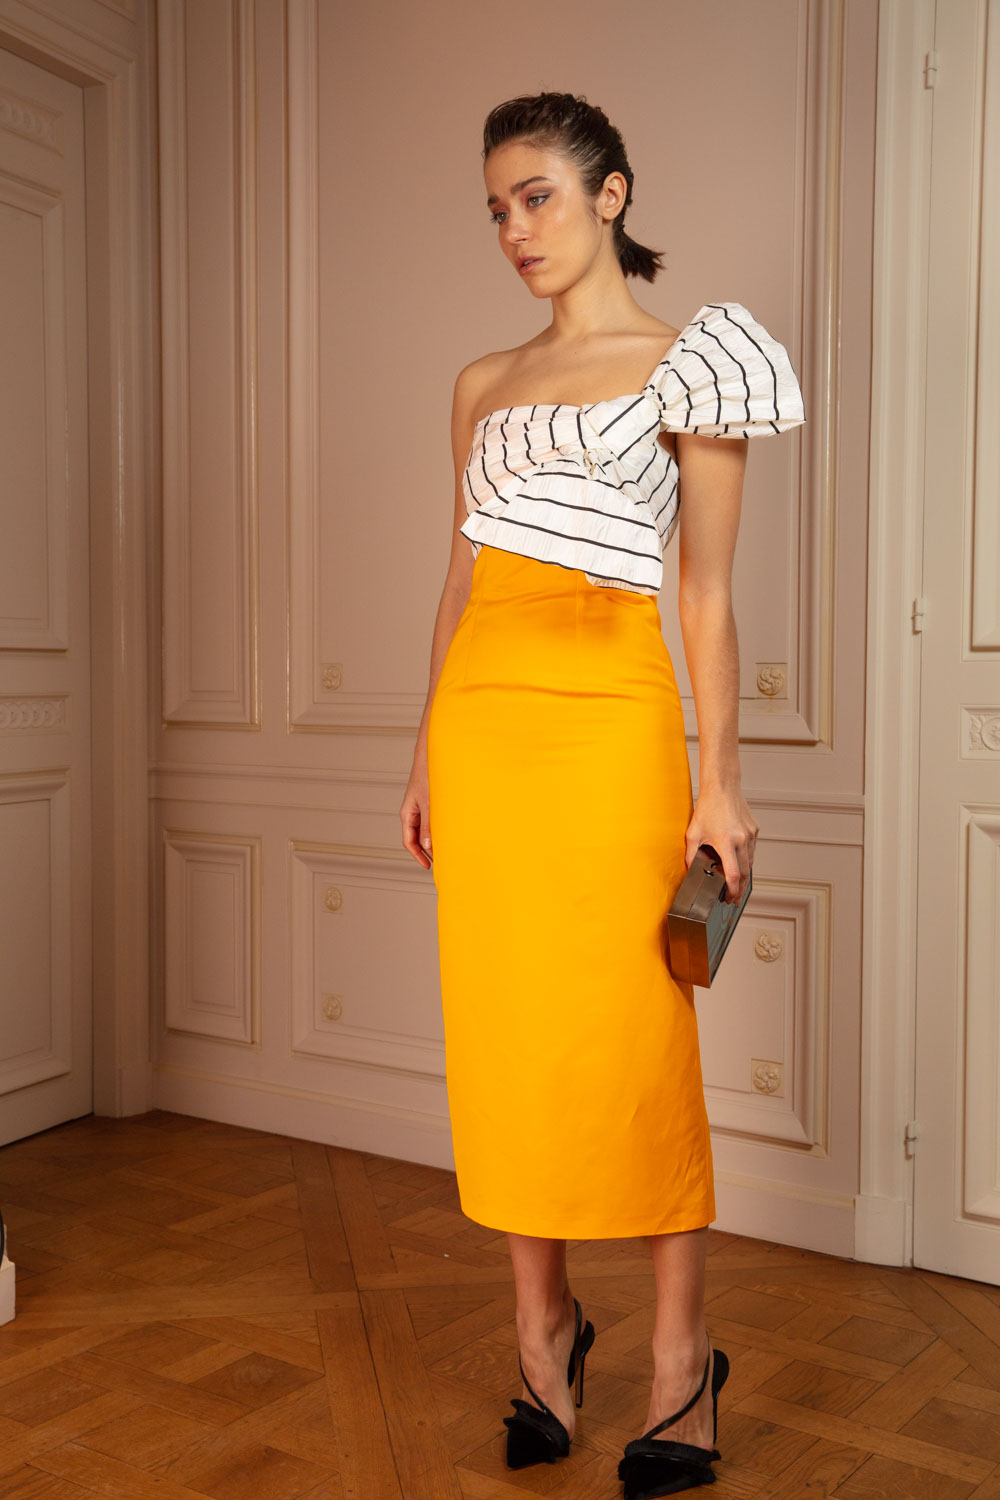 Sunflower yellow bustier pencil dress with striped couture bow